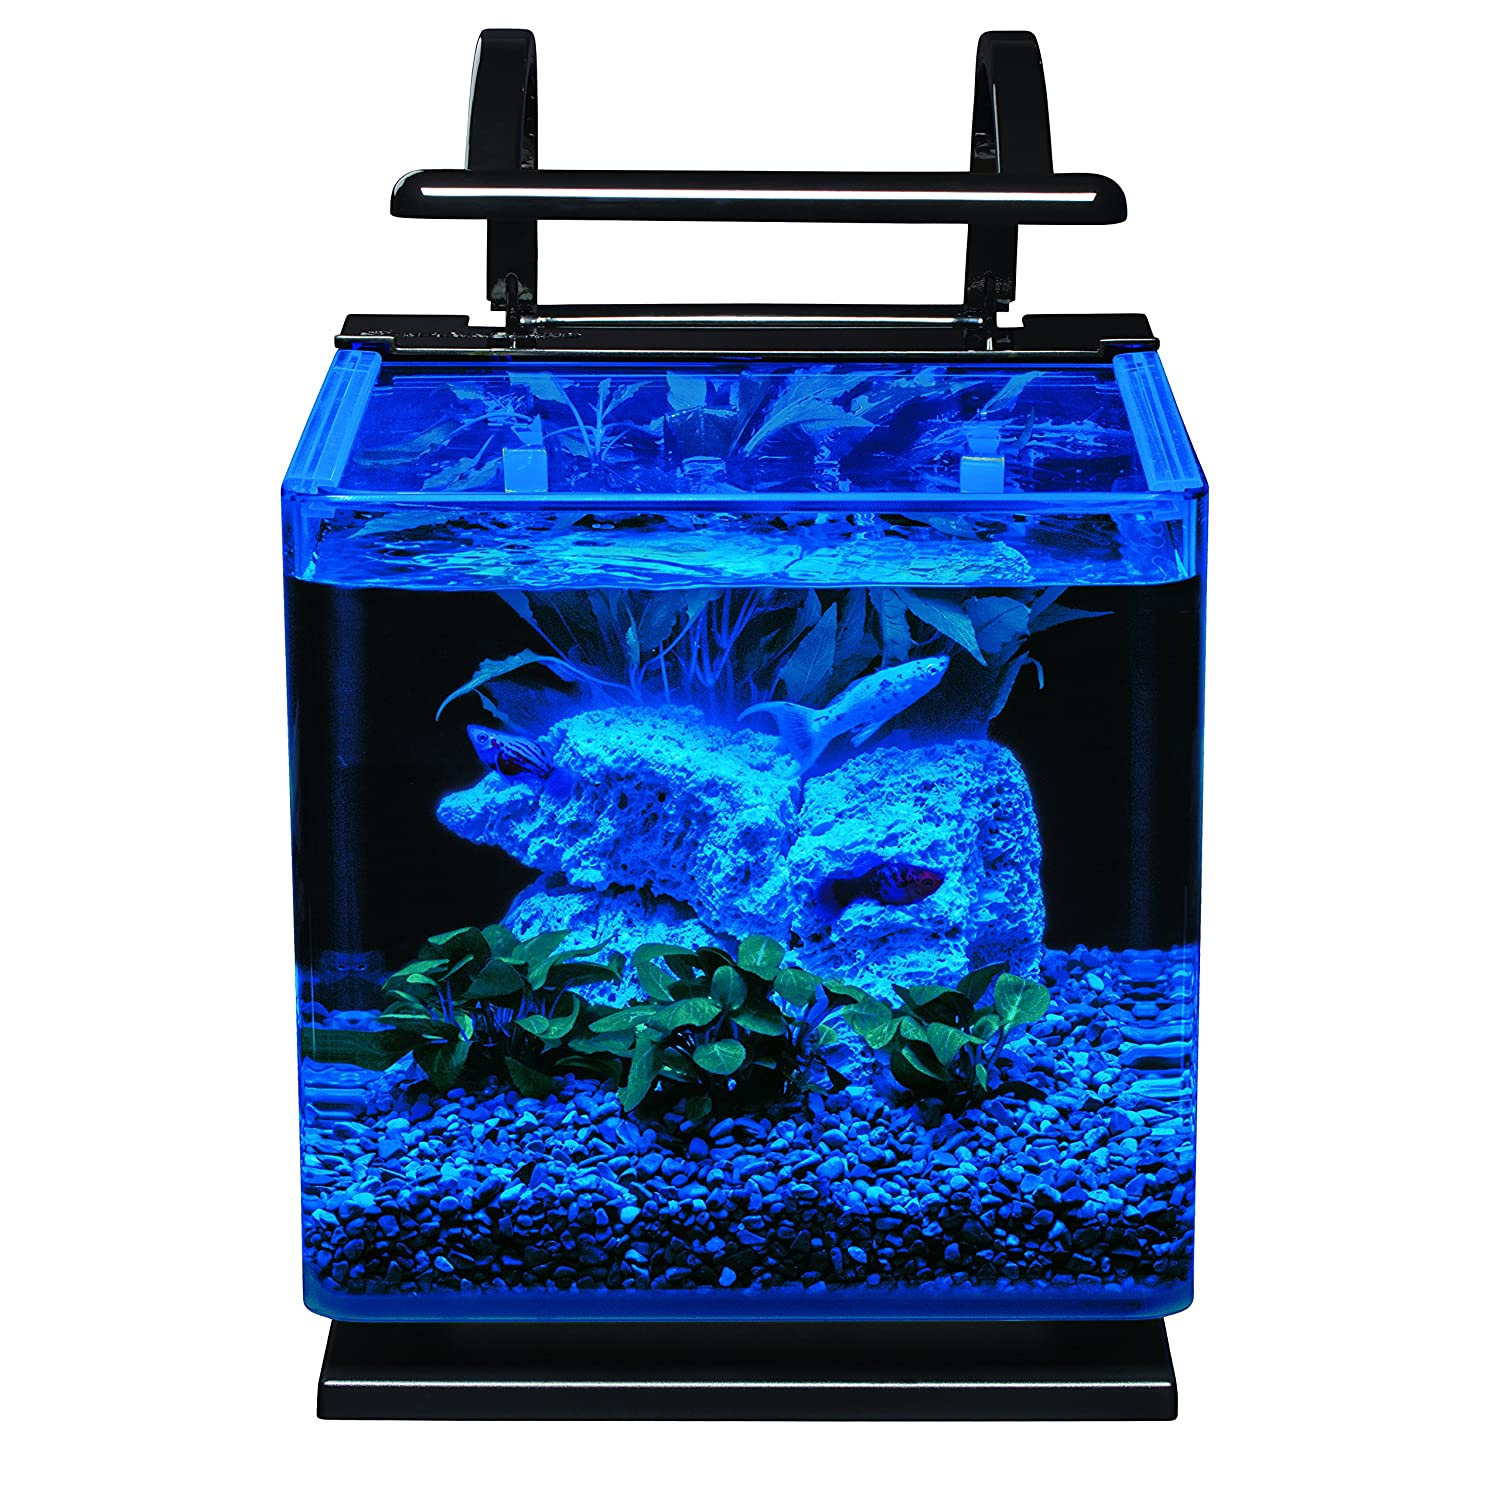 Fish aquarium just dial - Amazon Com Marineland Contour Glass Aquarium Kit With Rail Light 3 Gallon Pet Supplies Pet Supplies